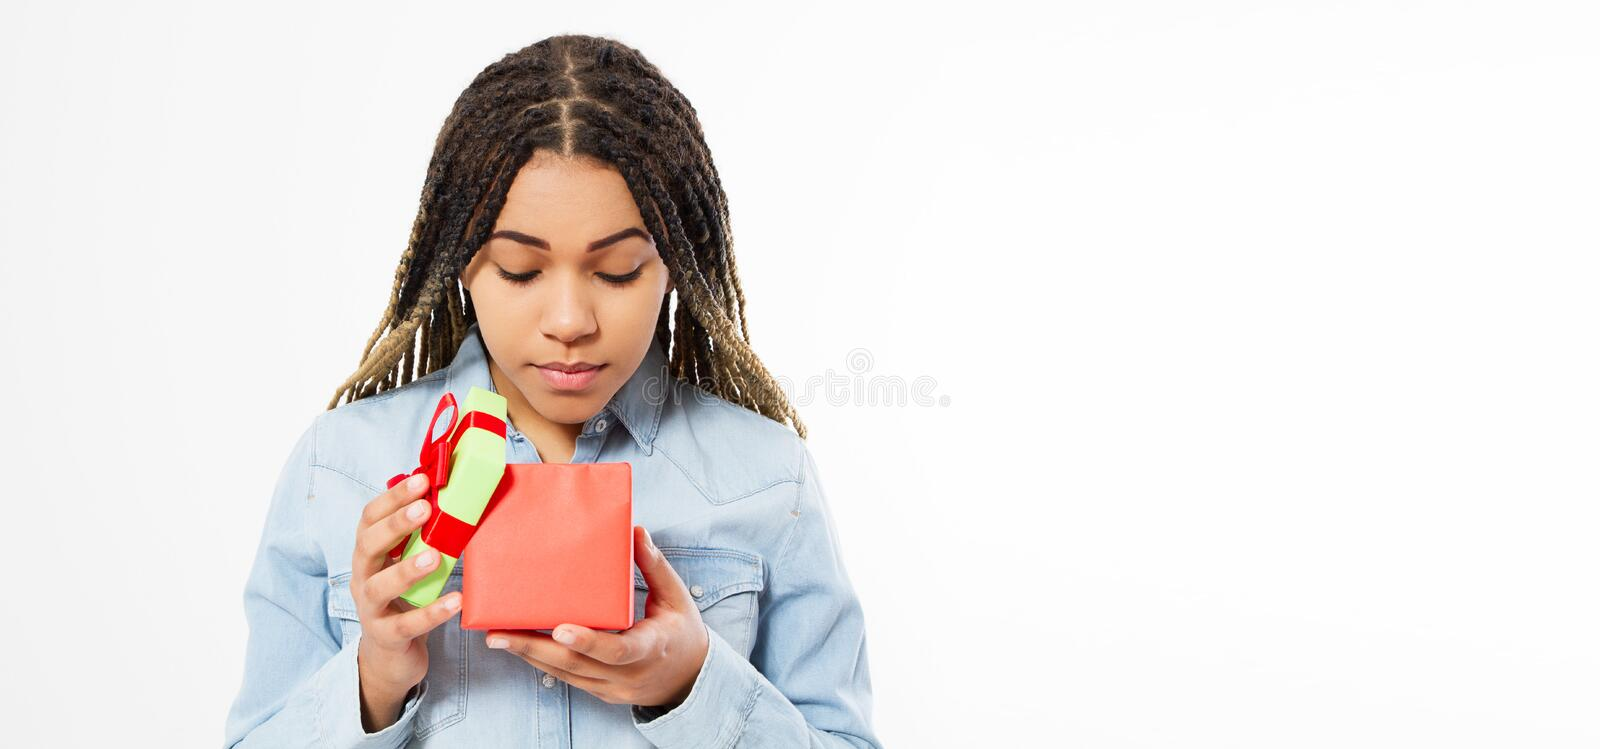 Beautiful Afro American Girl Opens A Gift Box Copy Space Mock Up, Holiday Celebration Concept.  royalty free stock images